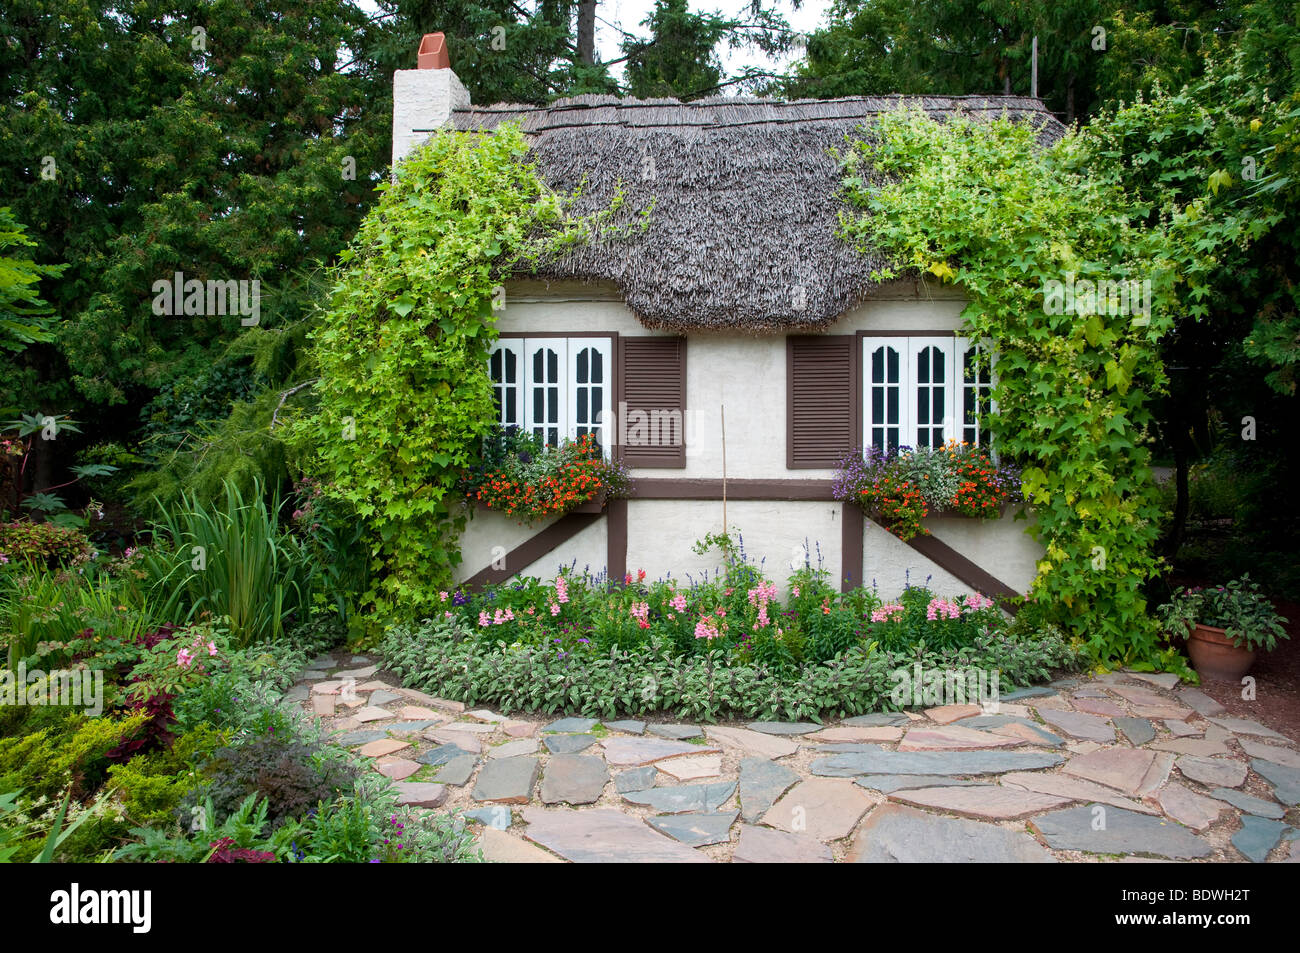 A garden cottage in the English Gardens of Assiniboine Park in Winnipeg, Manitoba, Canada. - Stock Image